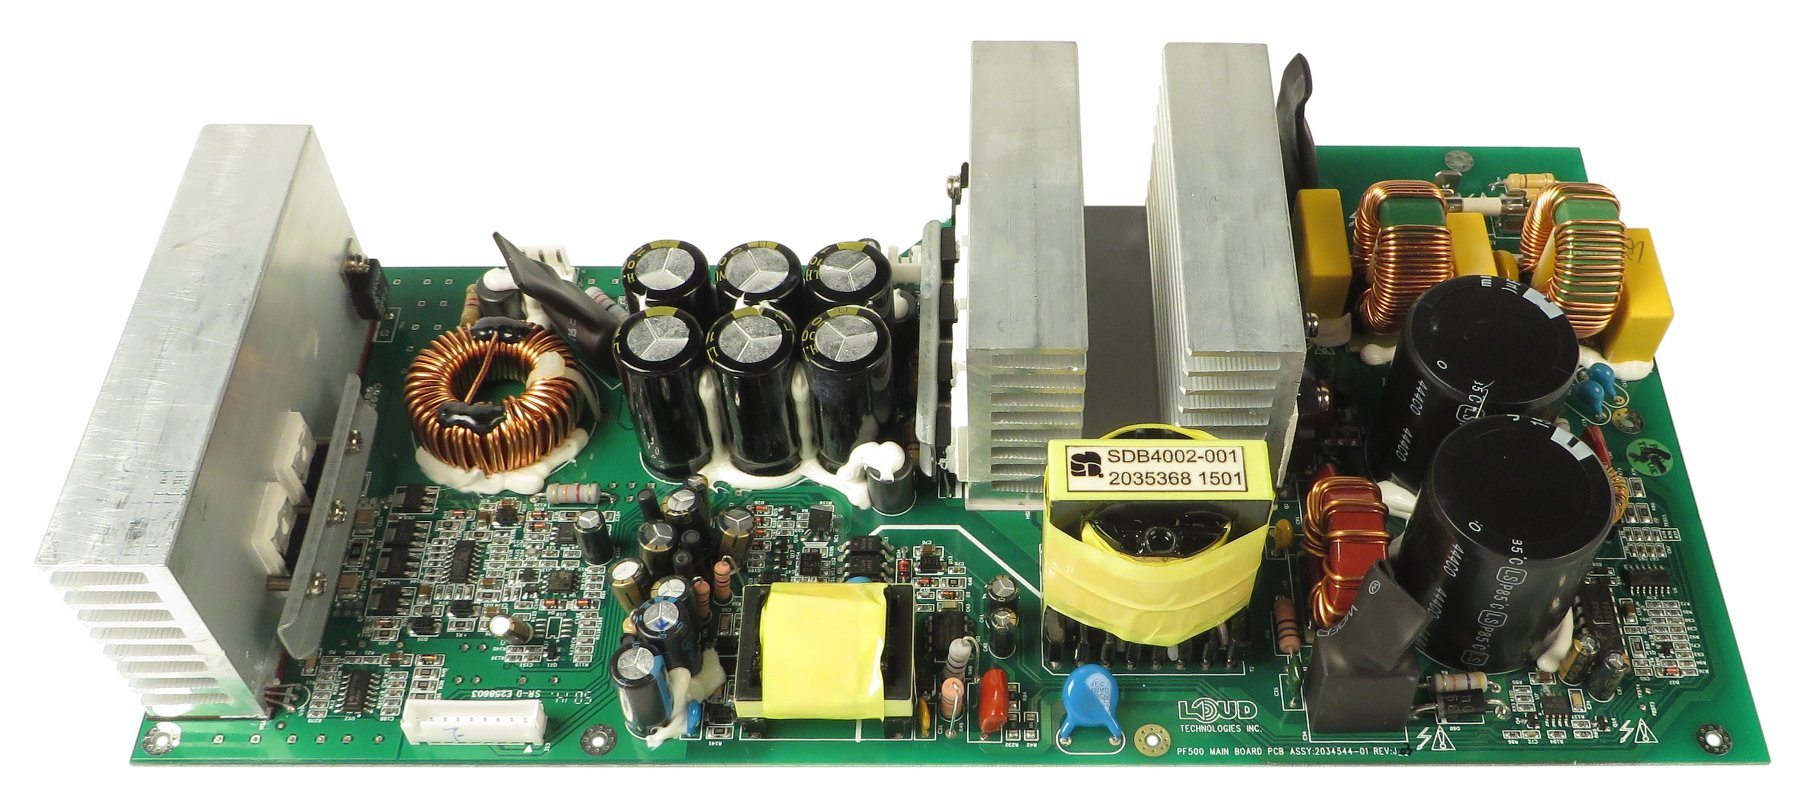 ampeg 2034544 01 main pcb for pf 500 full compass systems. Black Bedroom Furniture Sets. Home Design Ideas